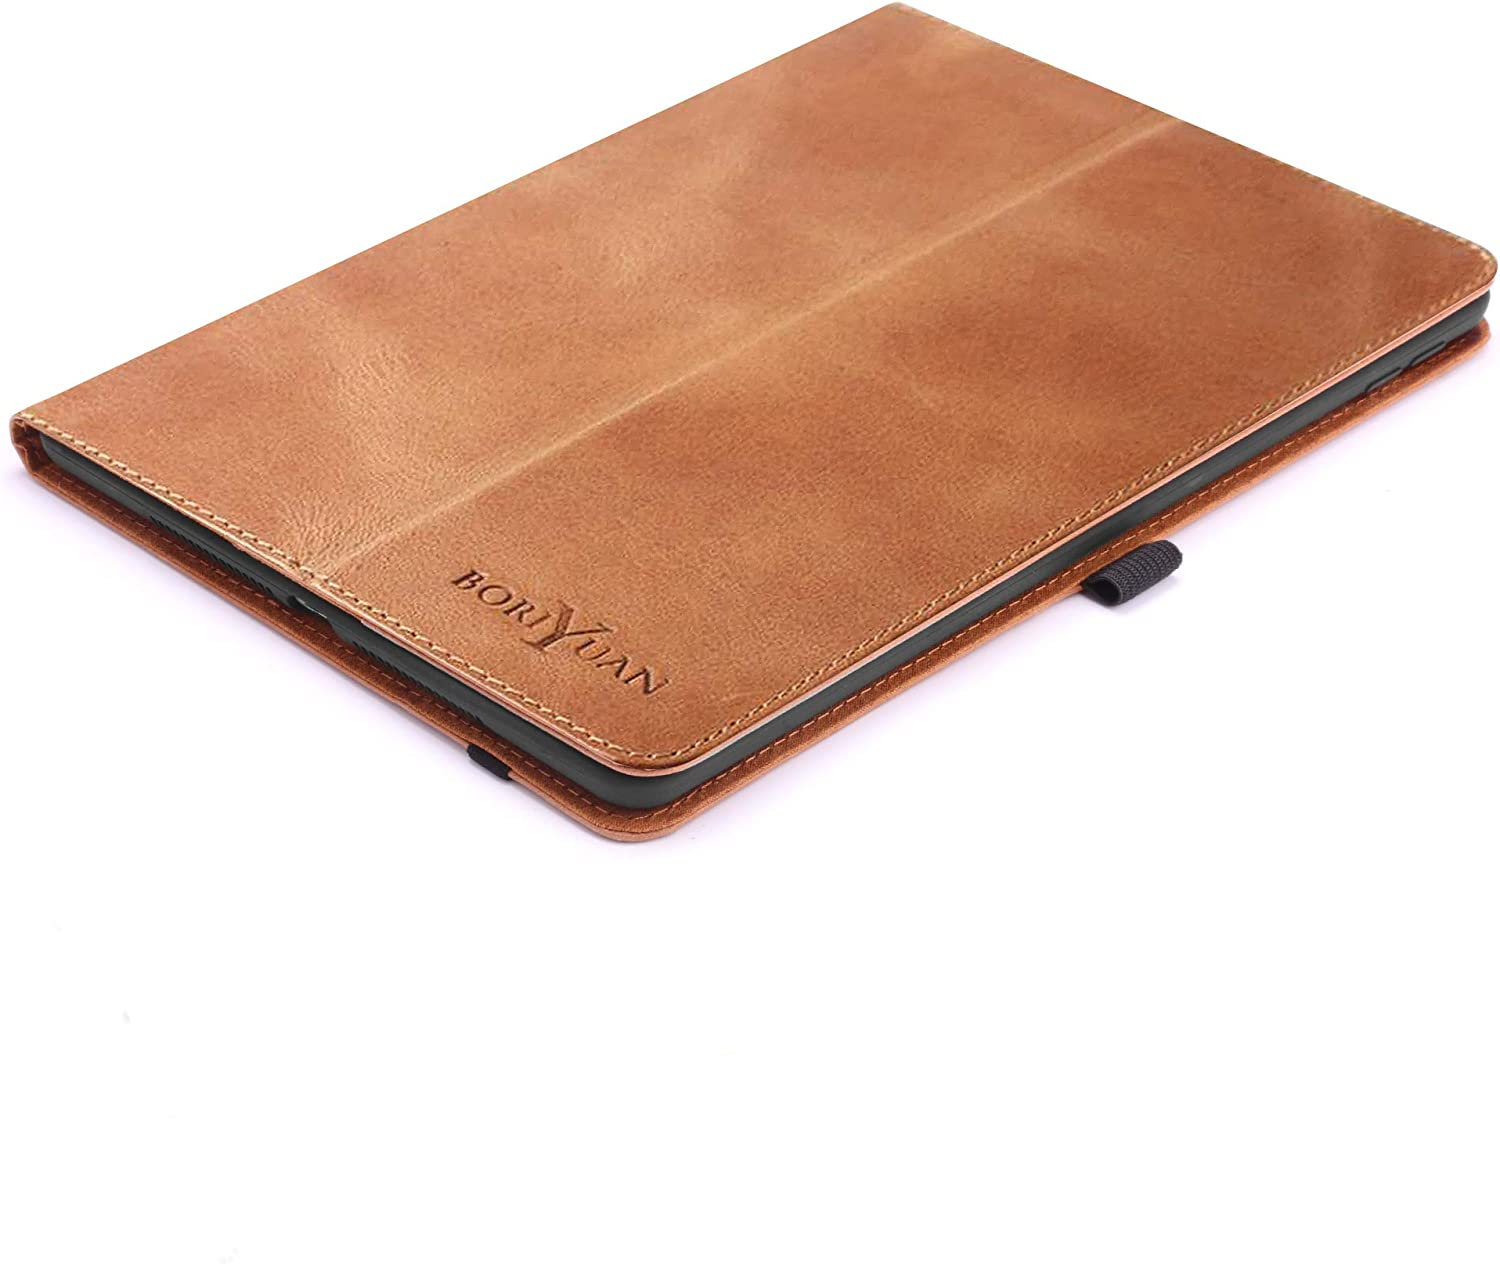 """Boriyuan Leather Case for New iPad 10.2 8th Gen2020/7th Gen 2019/iPad Air 3 10.5""""/iPad Pro 10.5 inch - Leather Smart Cover Protective Folio Flip Stand with Pencil Holder and Auto Sleep/Wake (Brown)"""